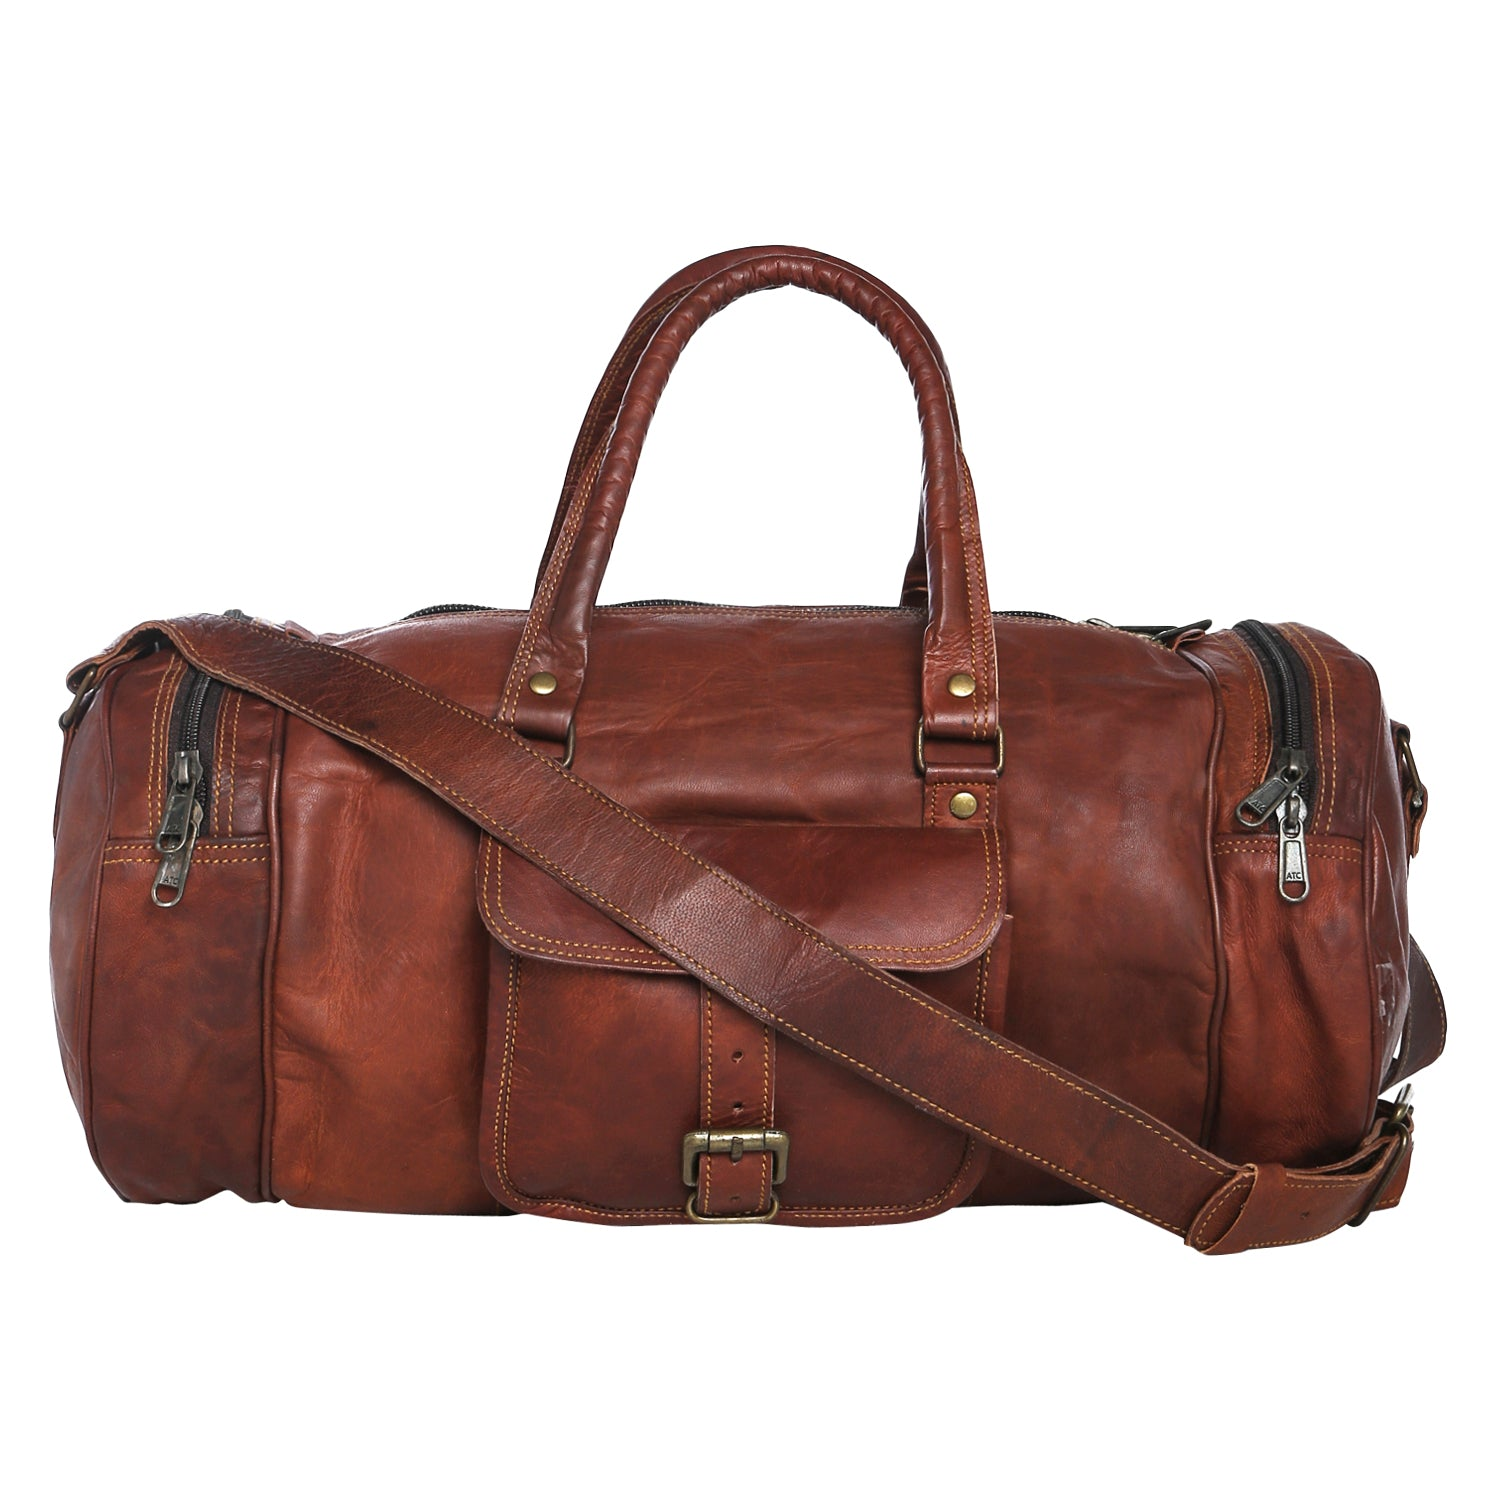 9a2b4a5ba412 Leather Gym Duffel Bag